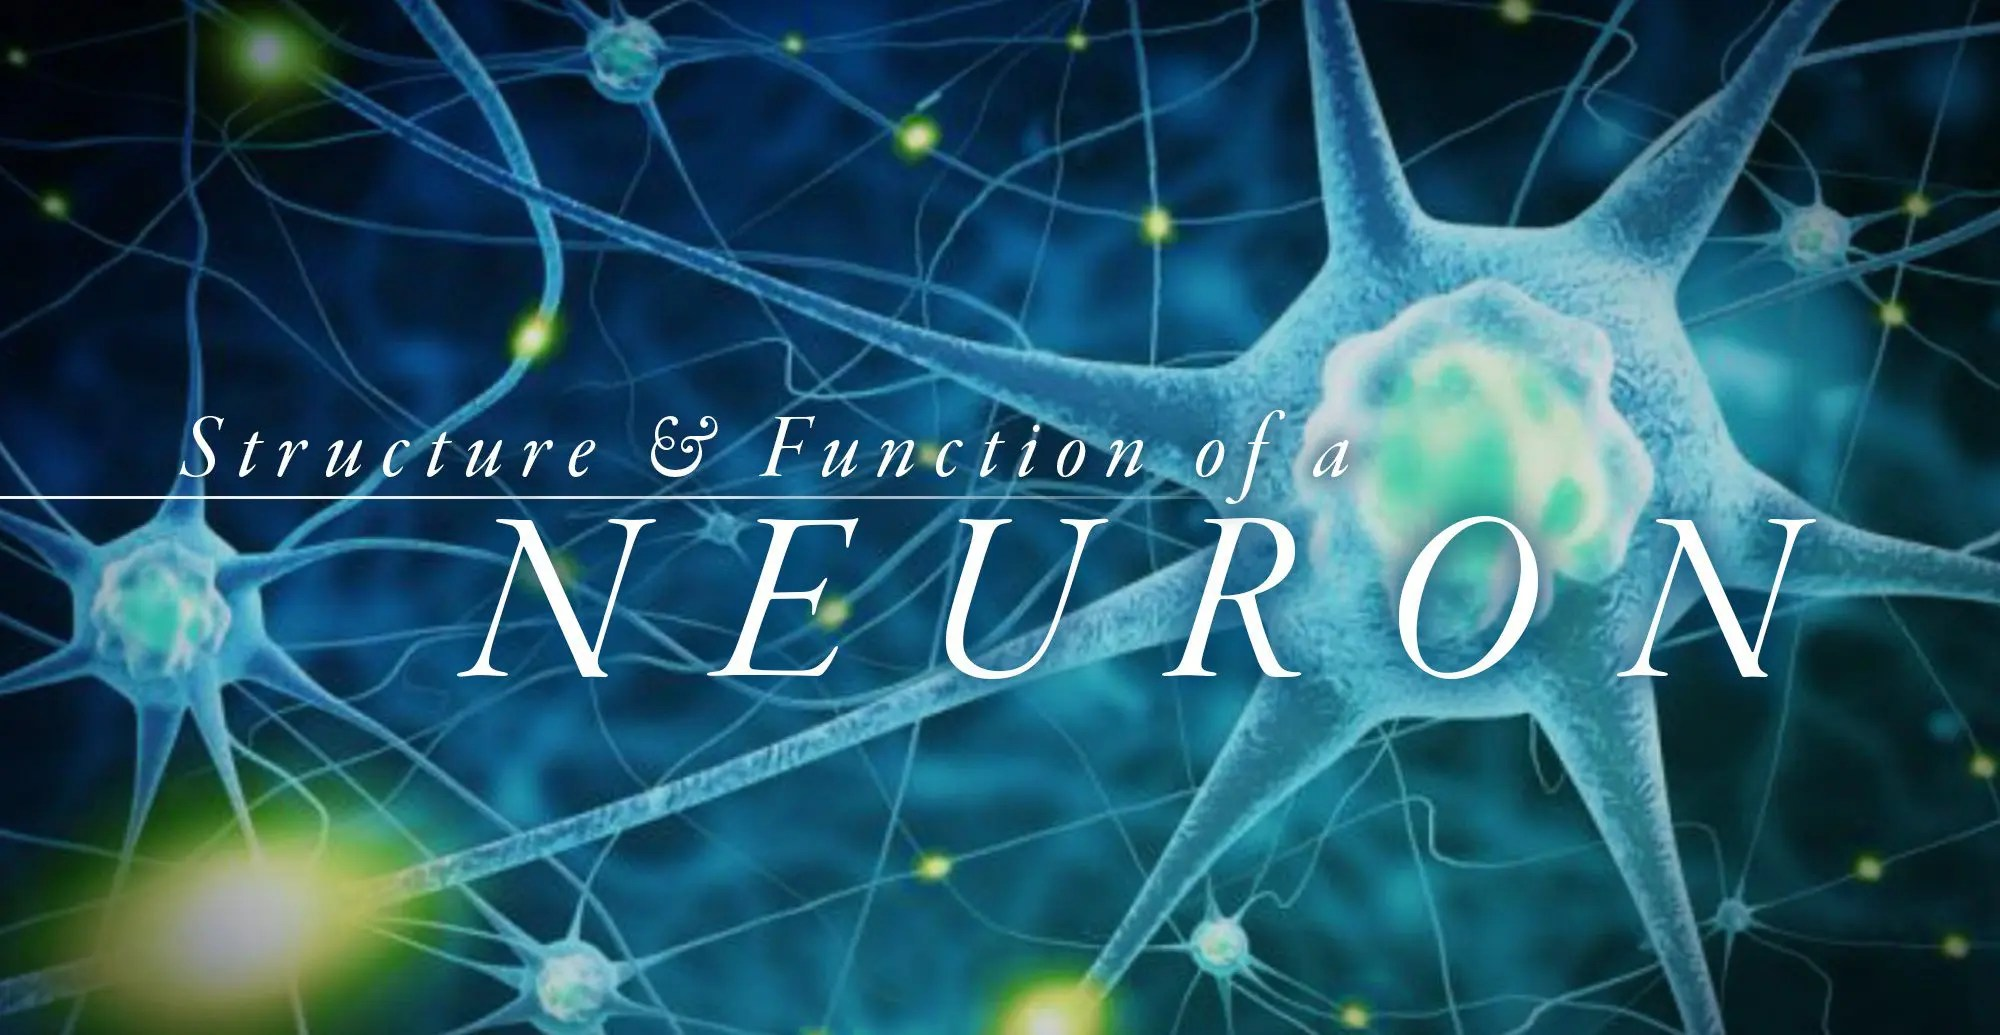 Understanding the Structure and Function of a Neuron